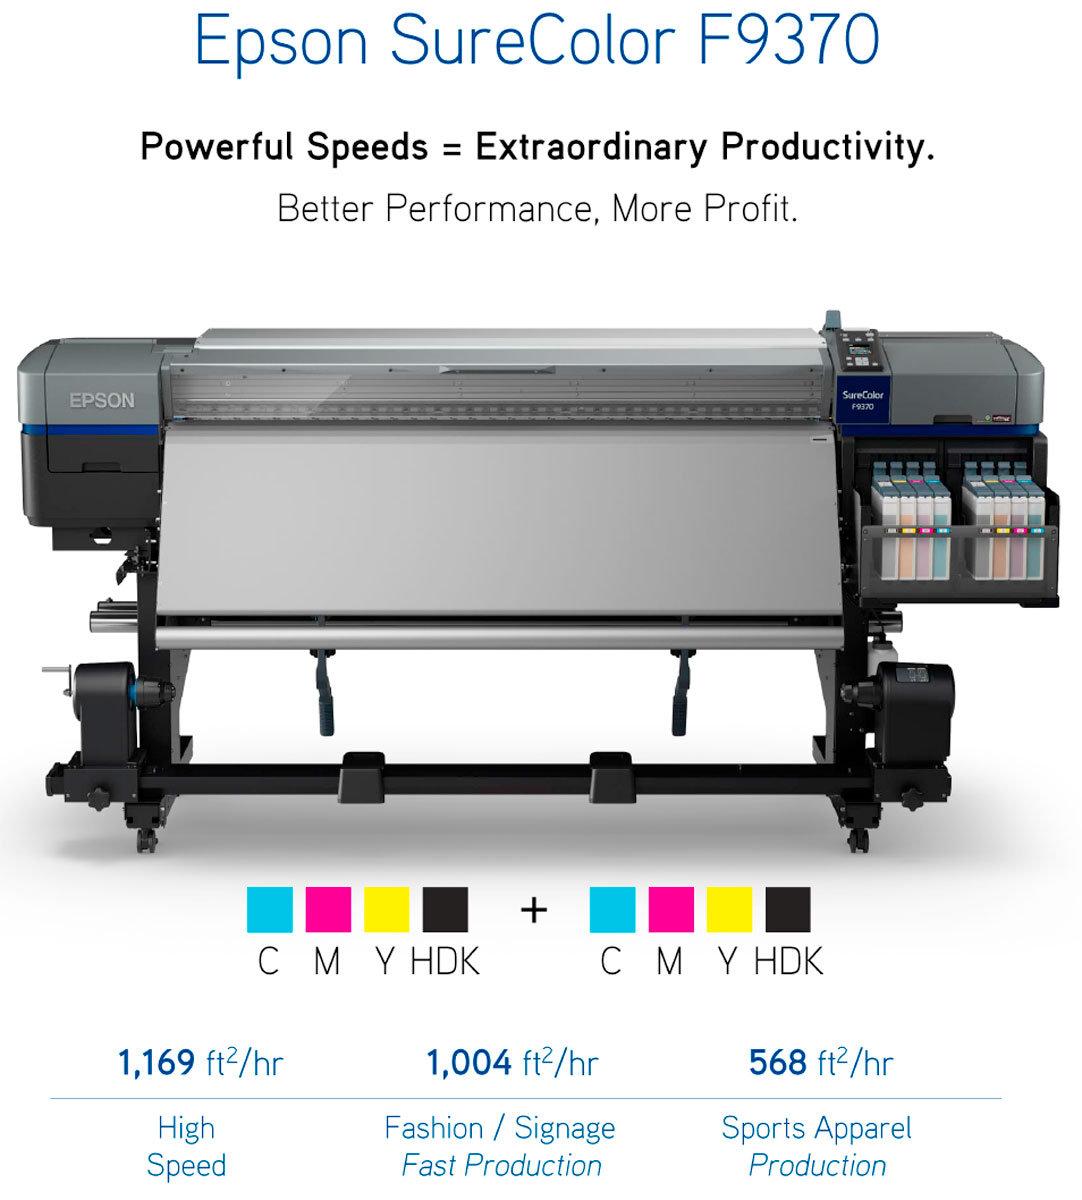 Epson scf9370PS dye sublimation pinter with speed ratings